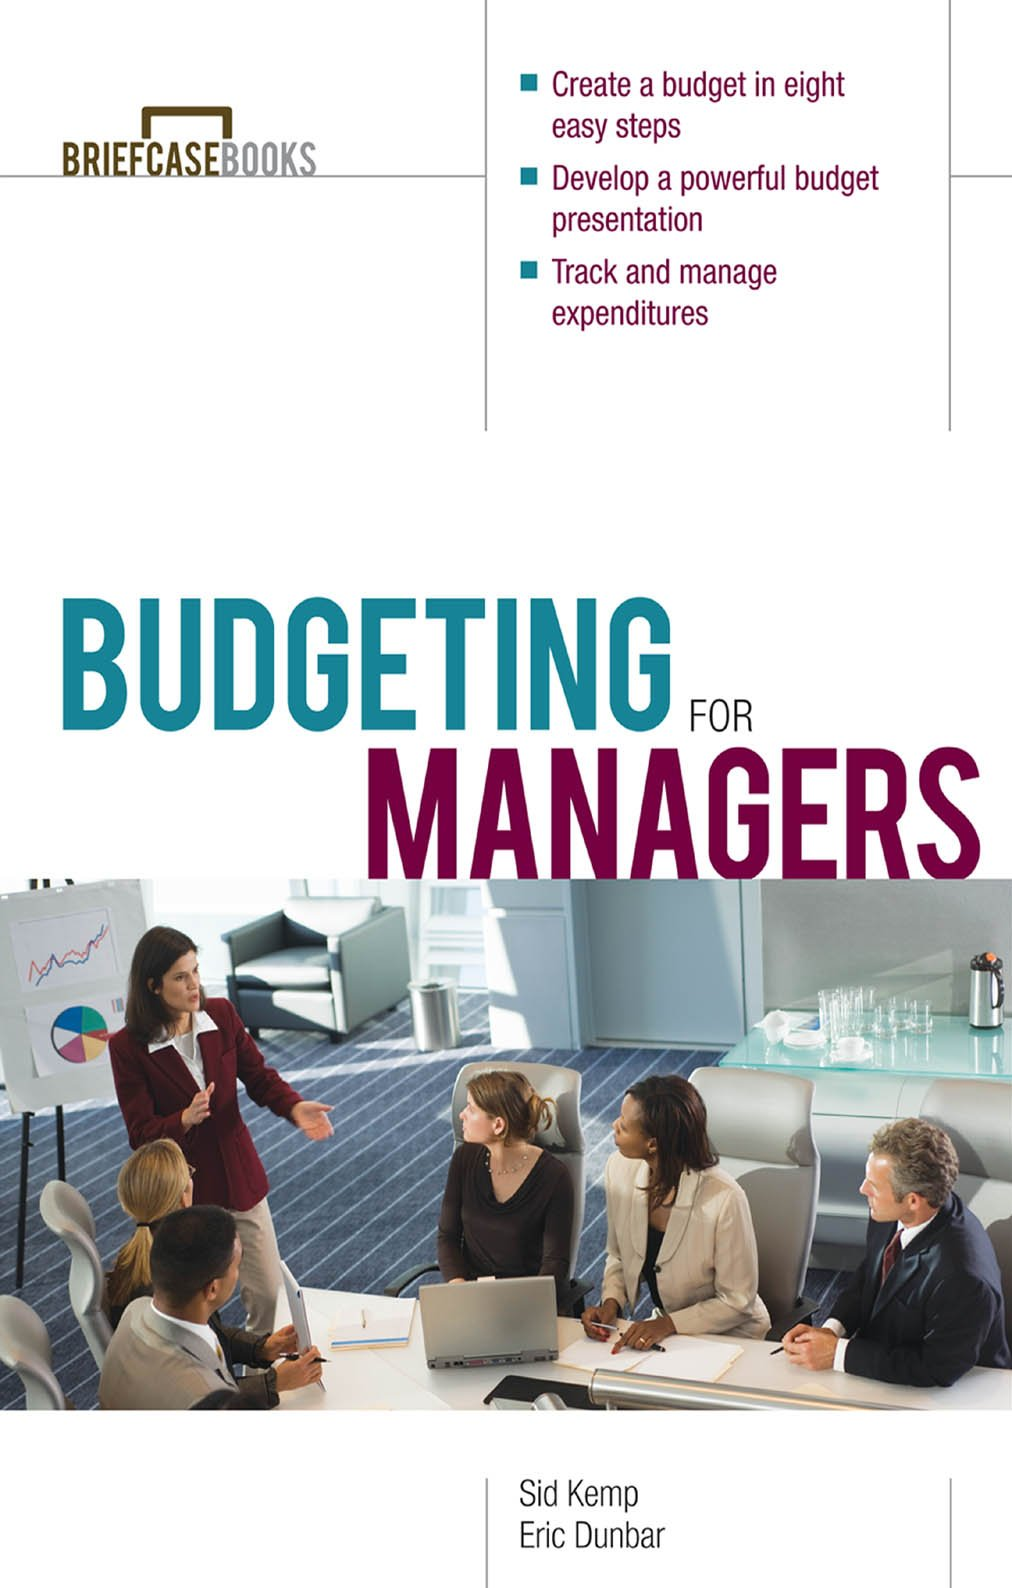 Budgeting for Managers: A Briefcase Book (Briefcase Books Series)